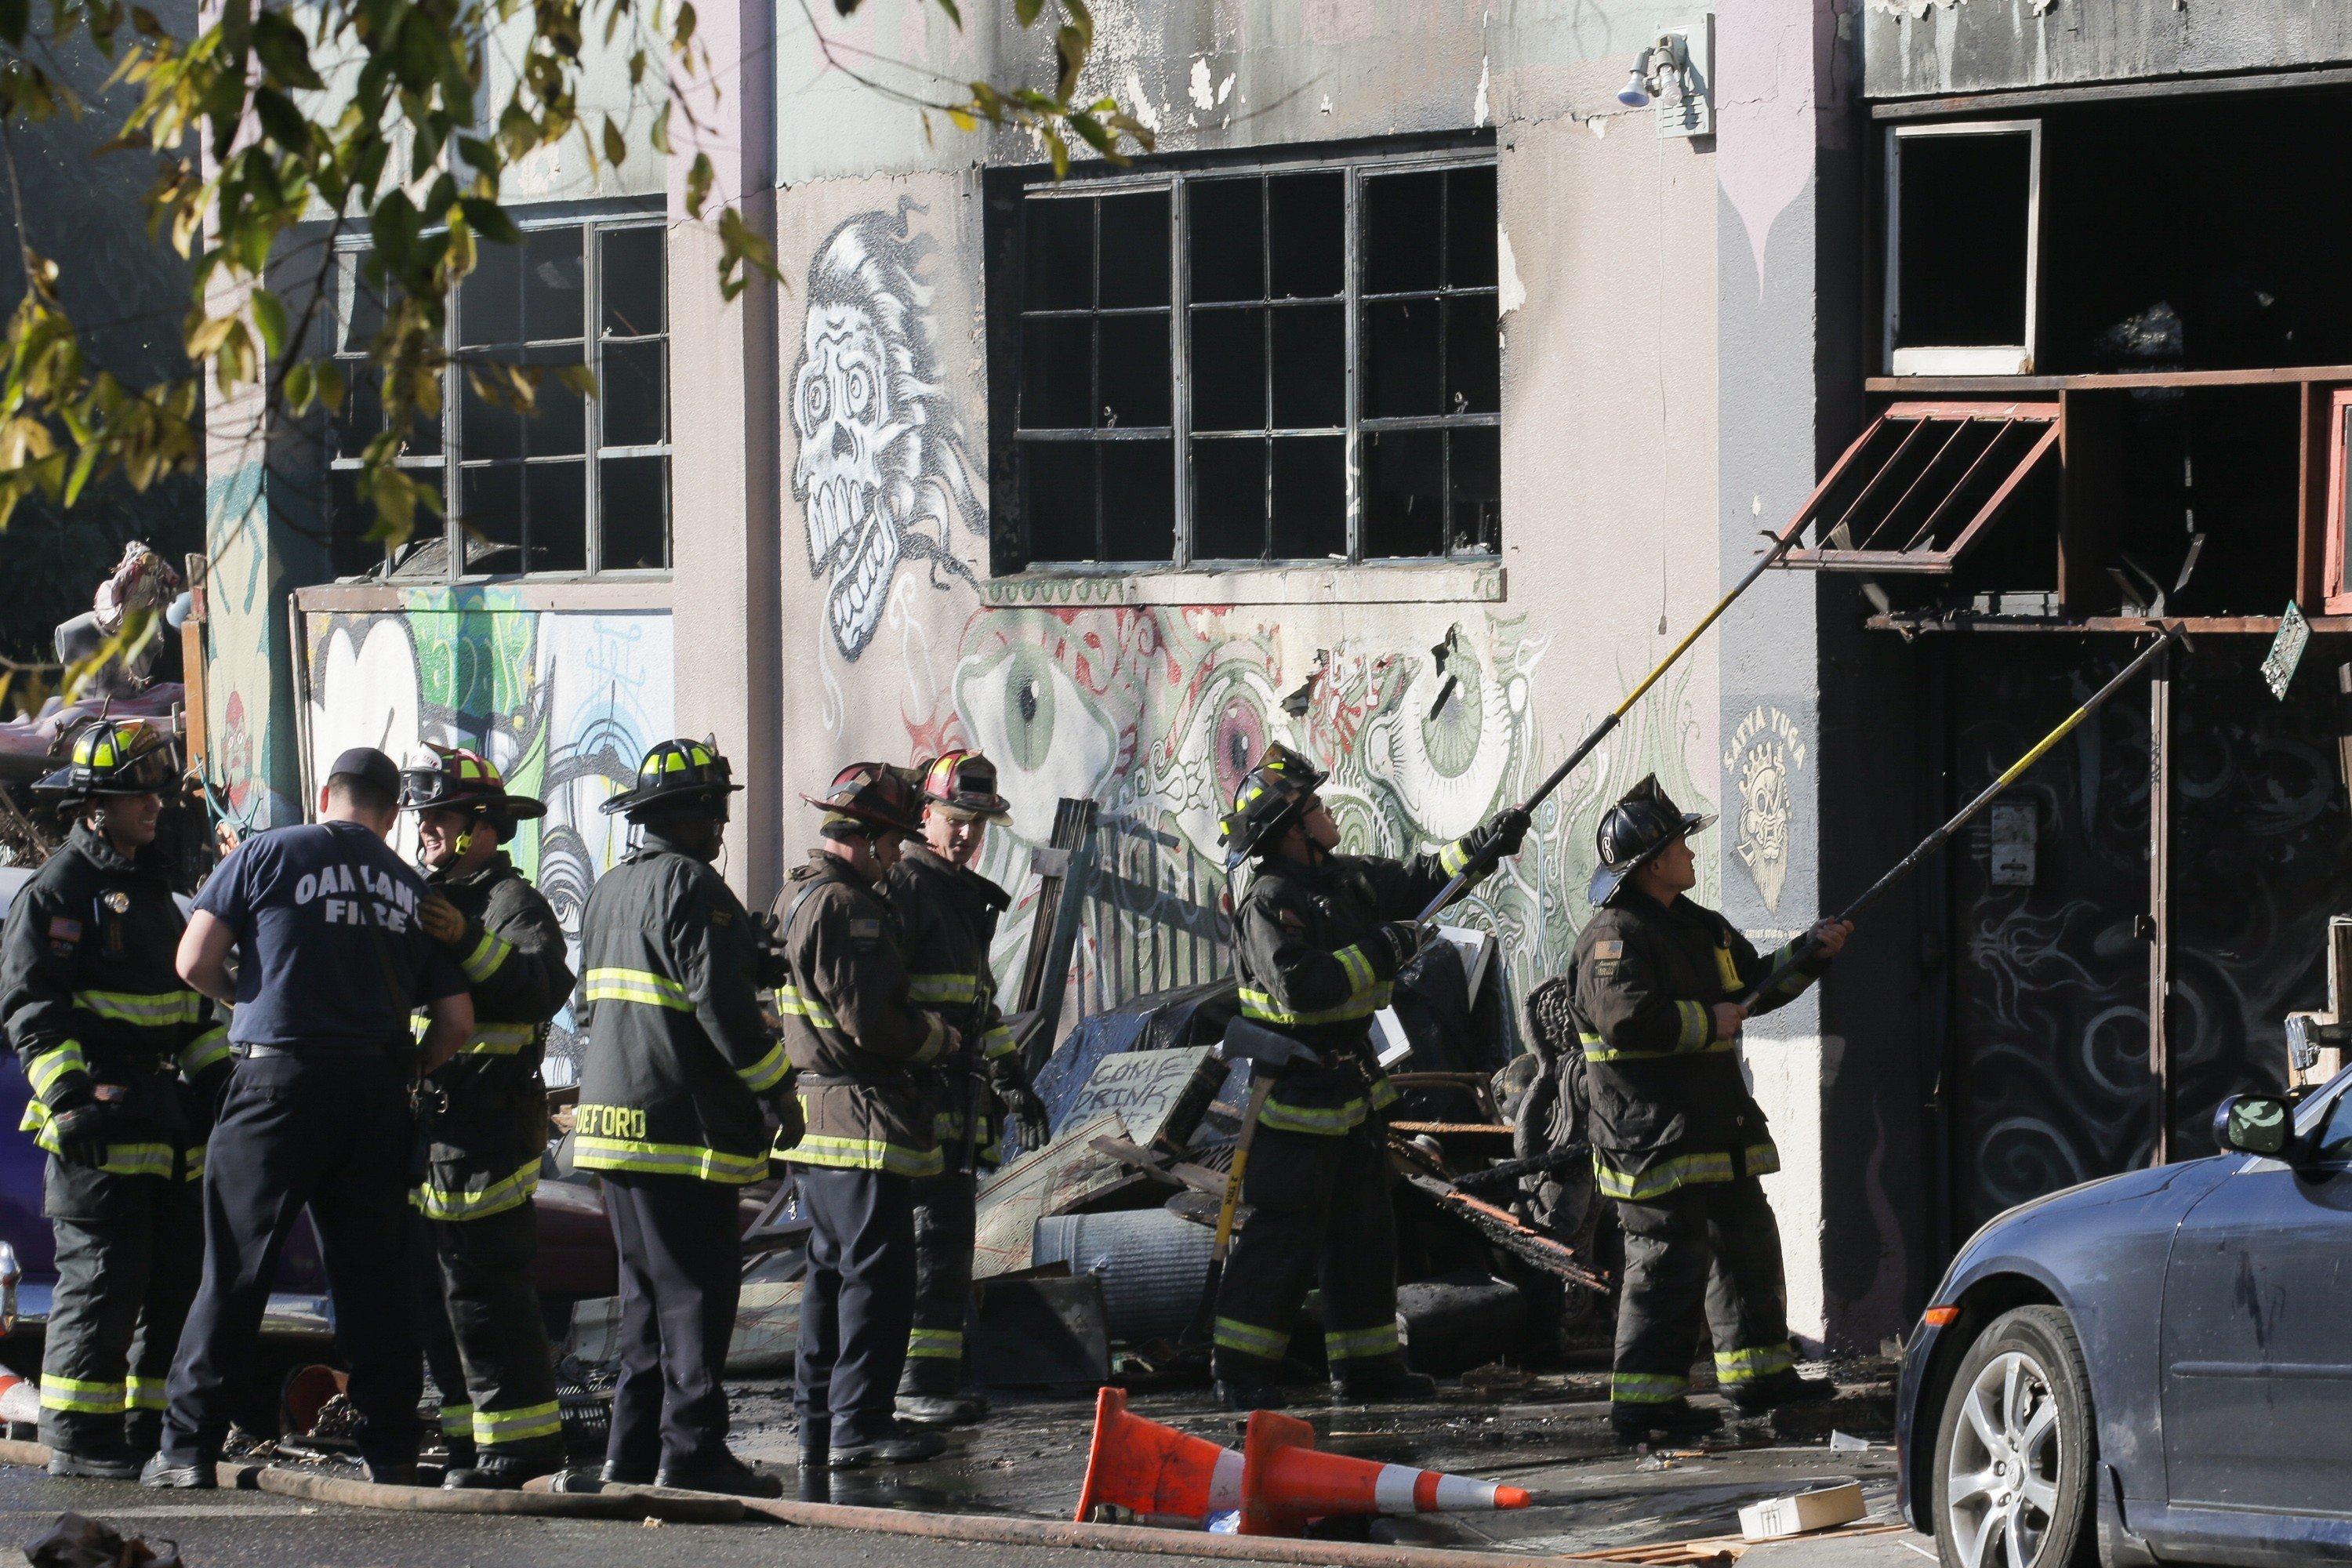 Warehouse Fire Kills Several People At Dance Party In Oakland